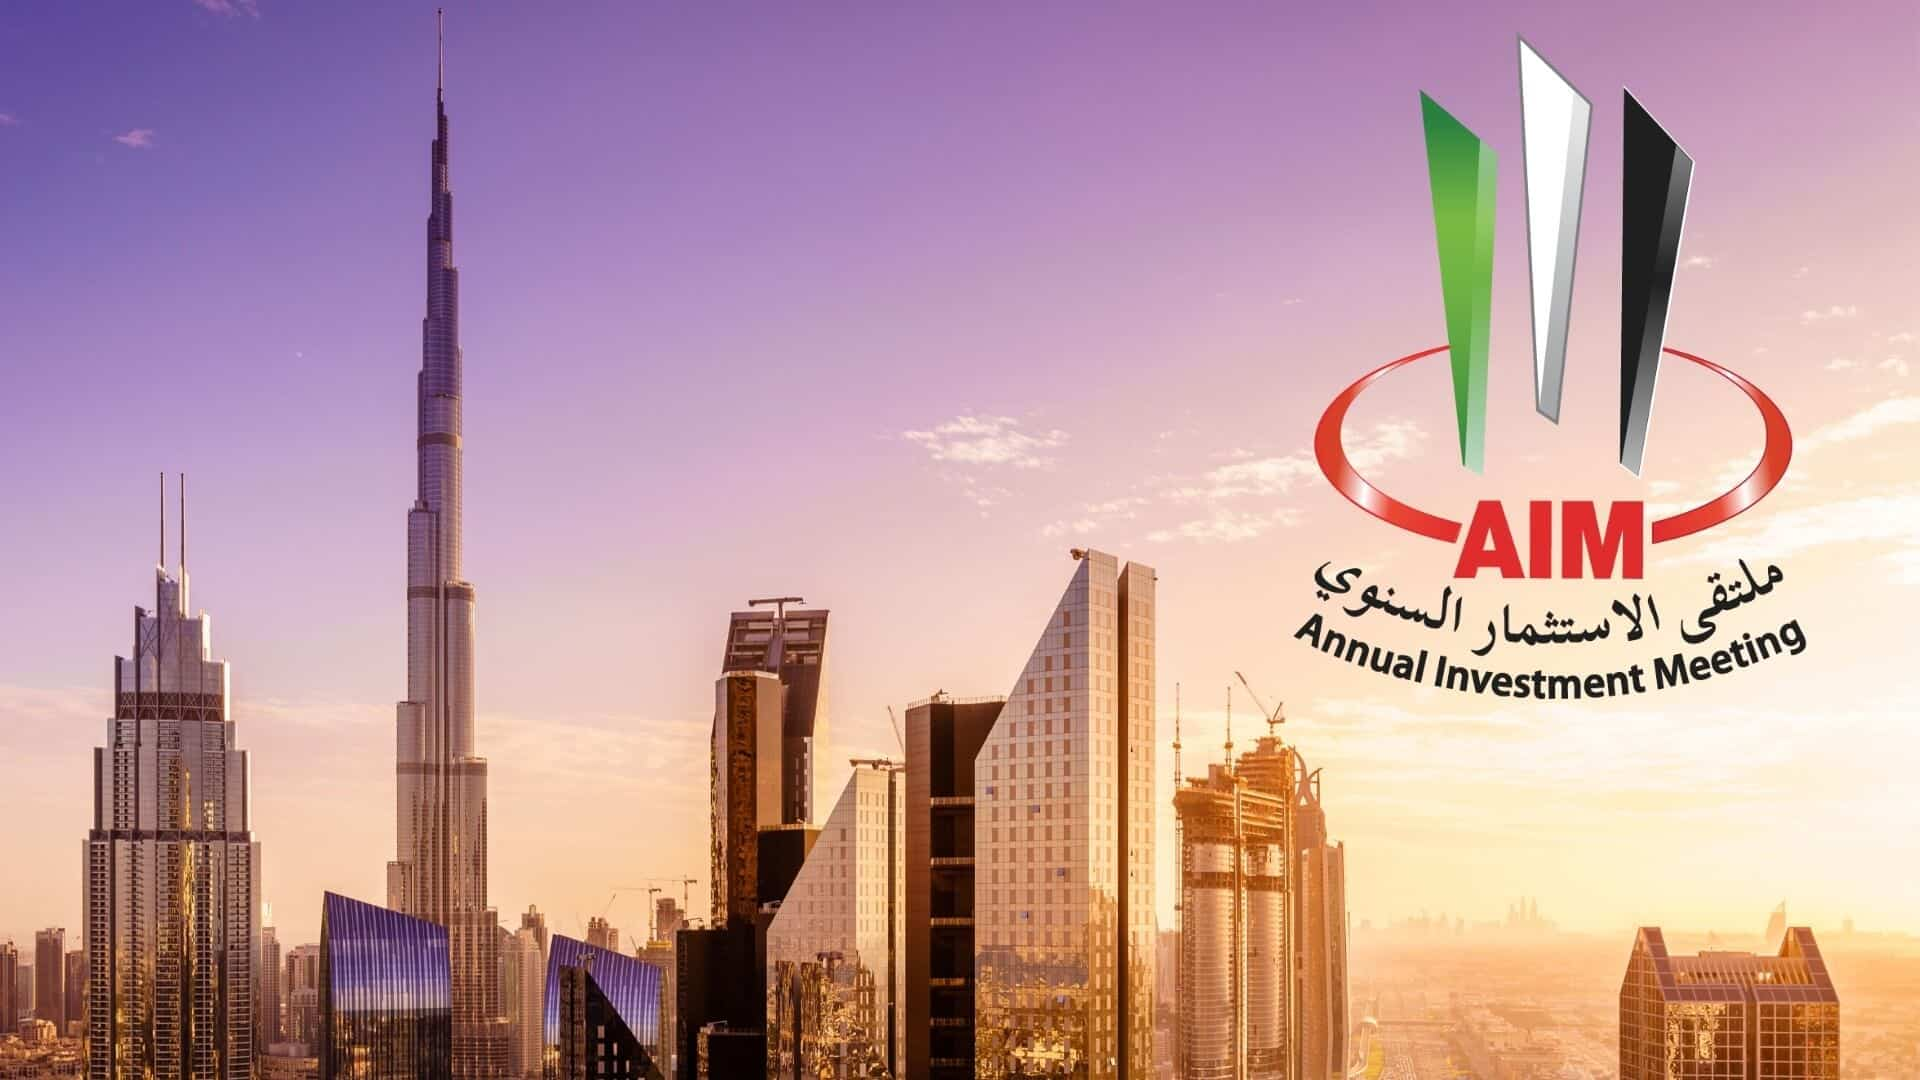 Annual Investment Meeting in Dubai Increases the Scope of 2020 Conference Beyond FDI